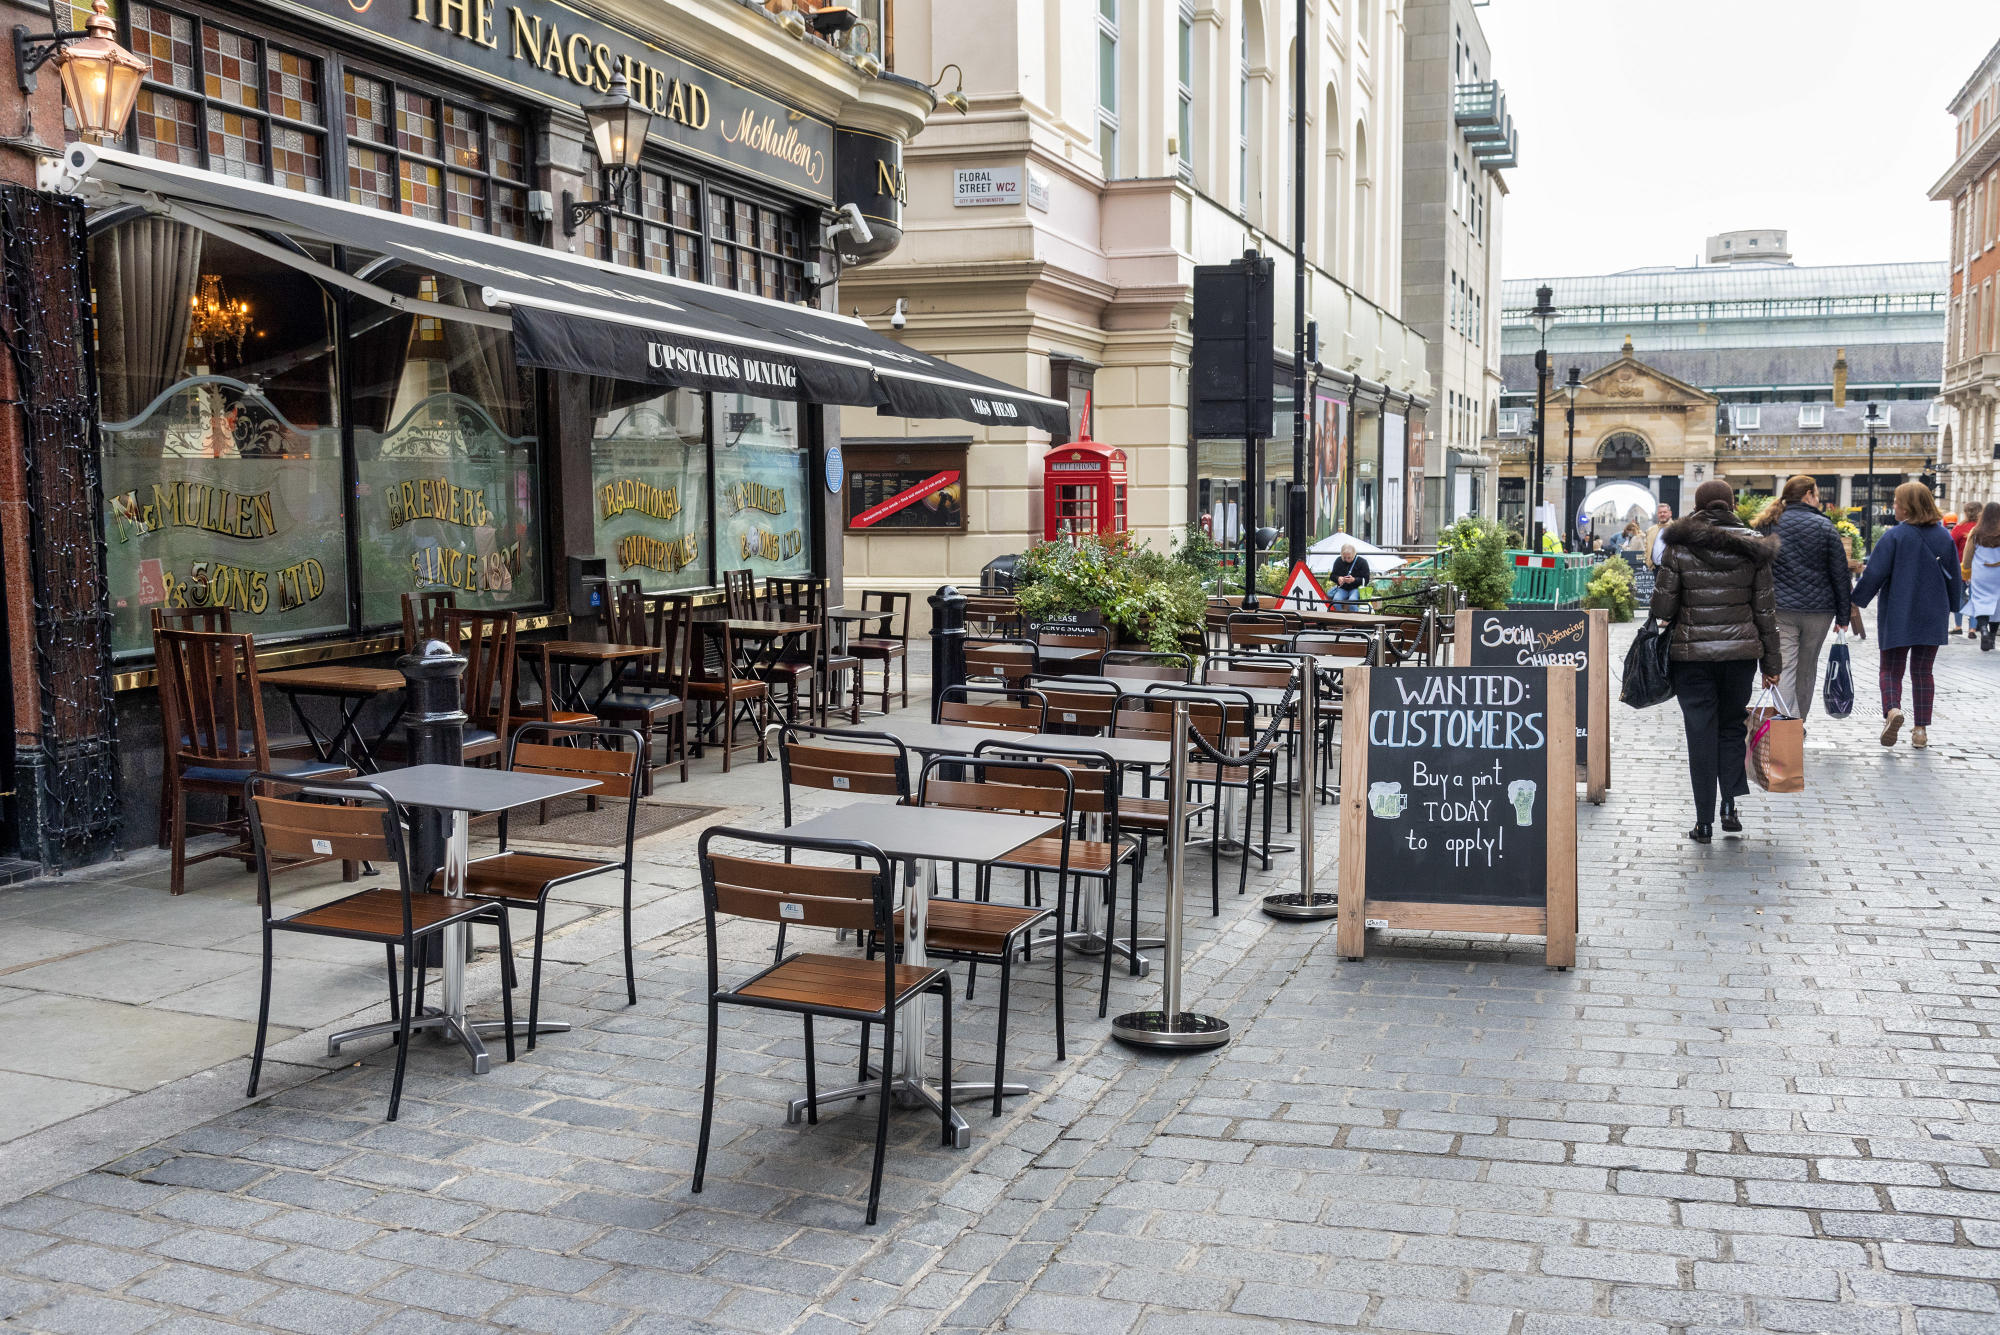 Just 1% of UK hospitality venues linked to Test and Trace incidences